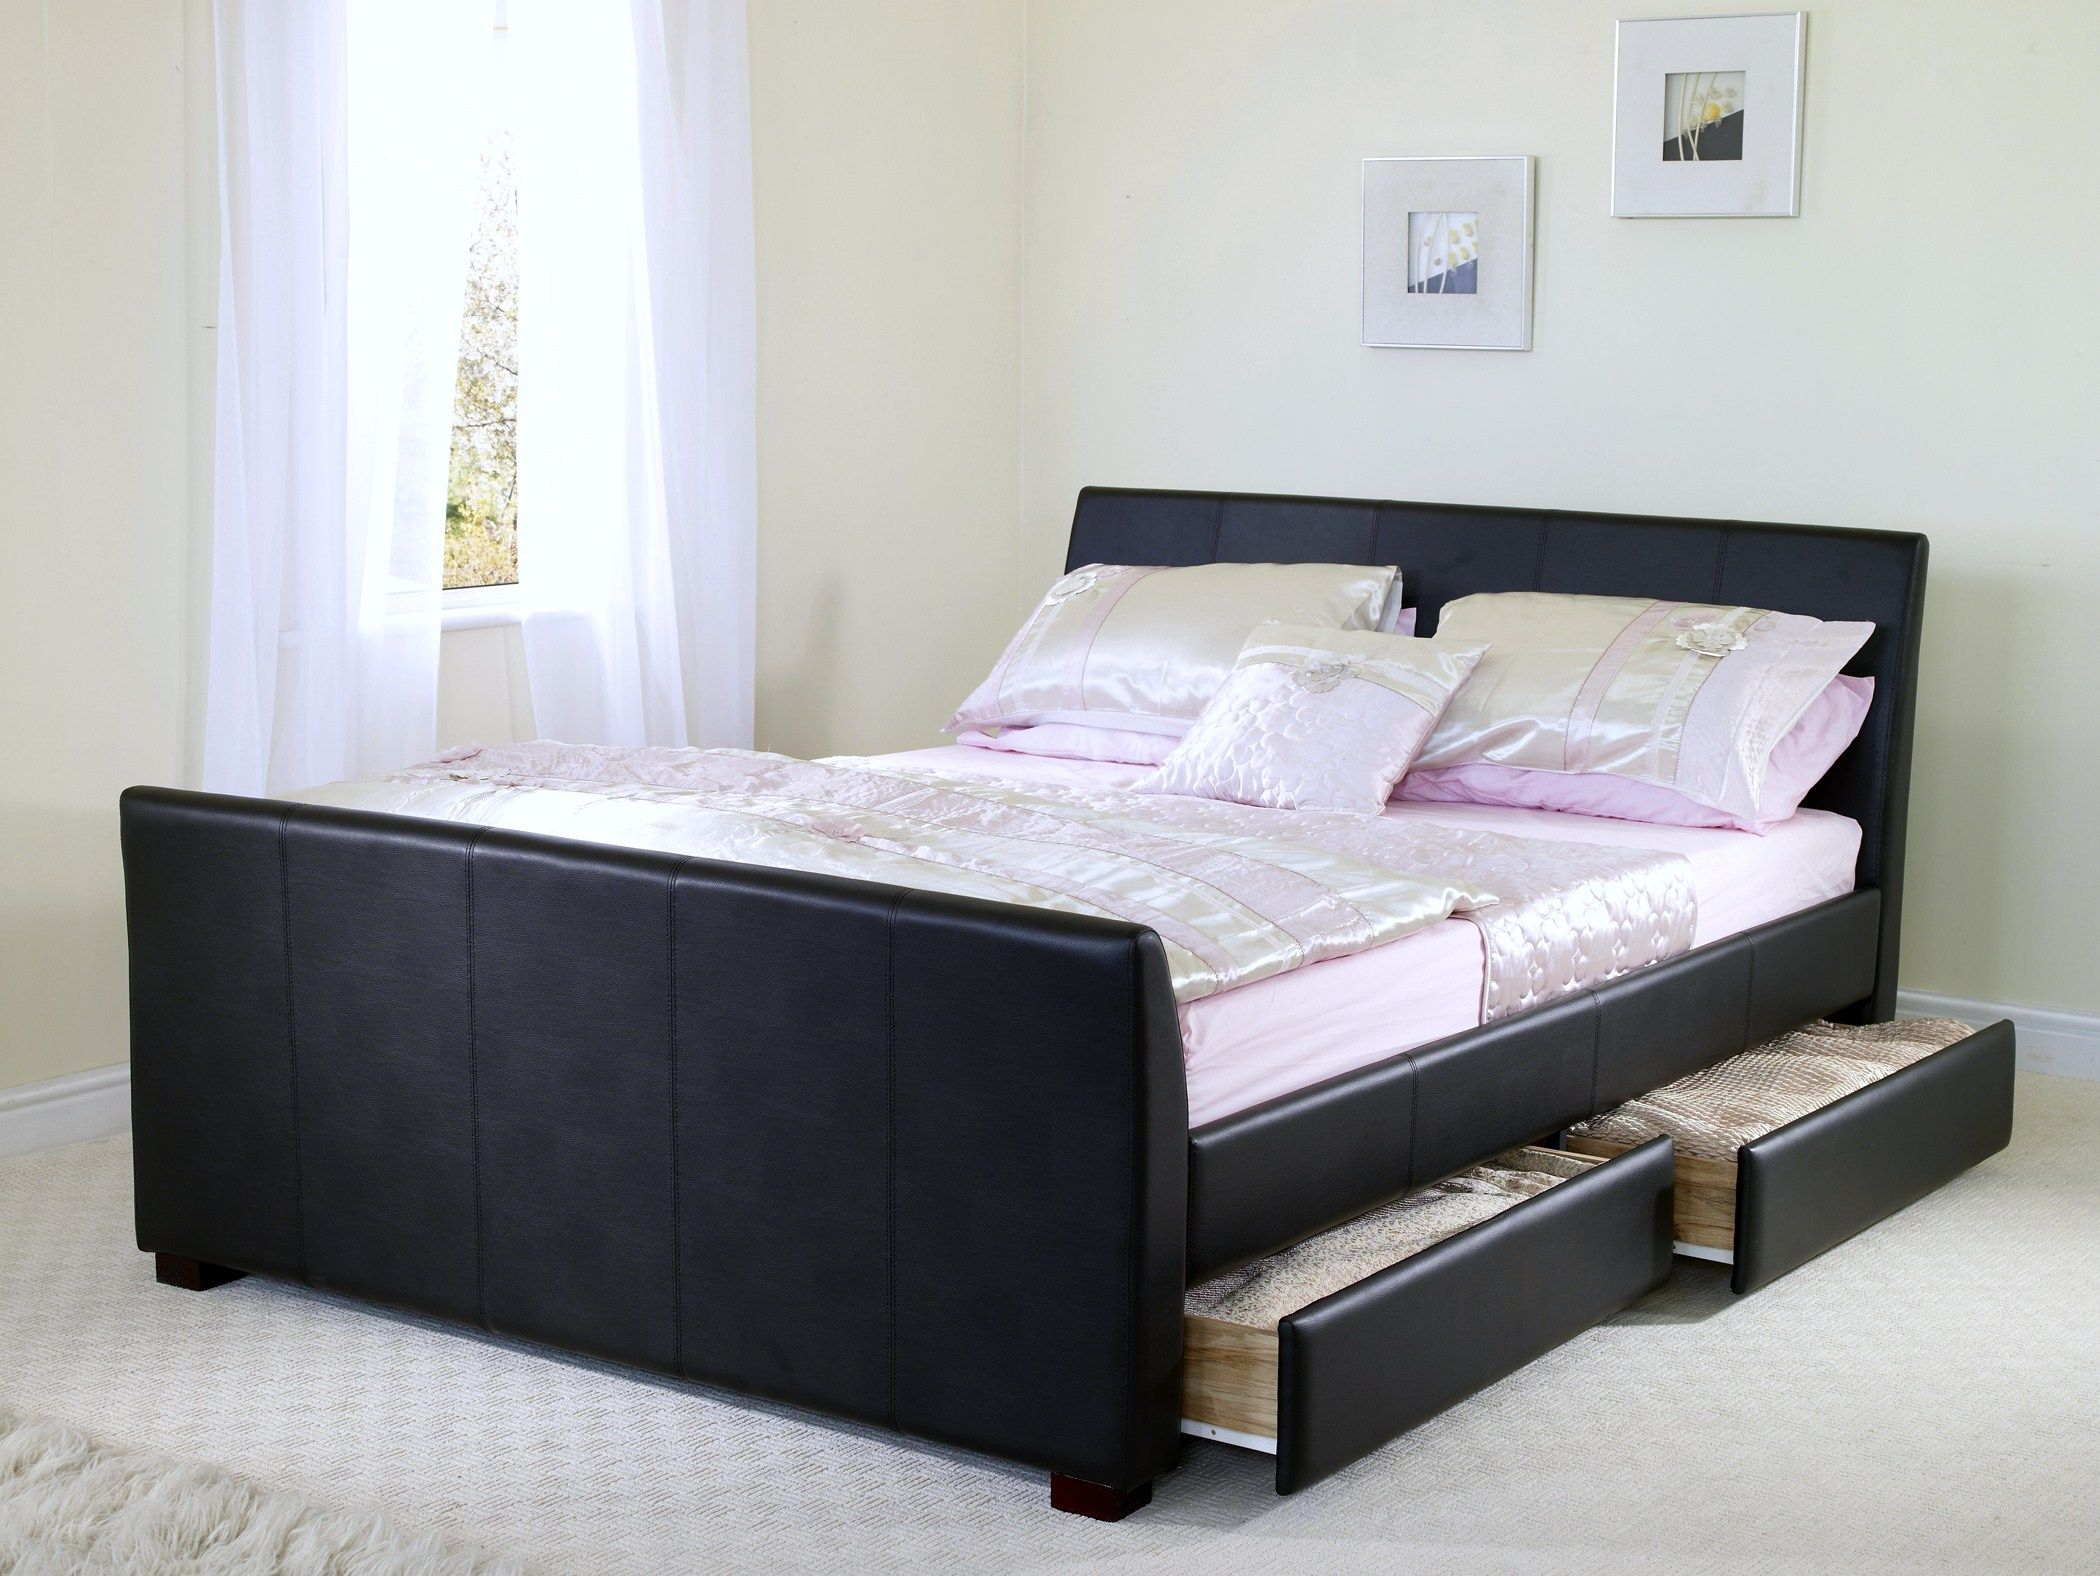 Best Fashionable Bed Frame With Storage Two Drawers With Black 640 x 480